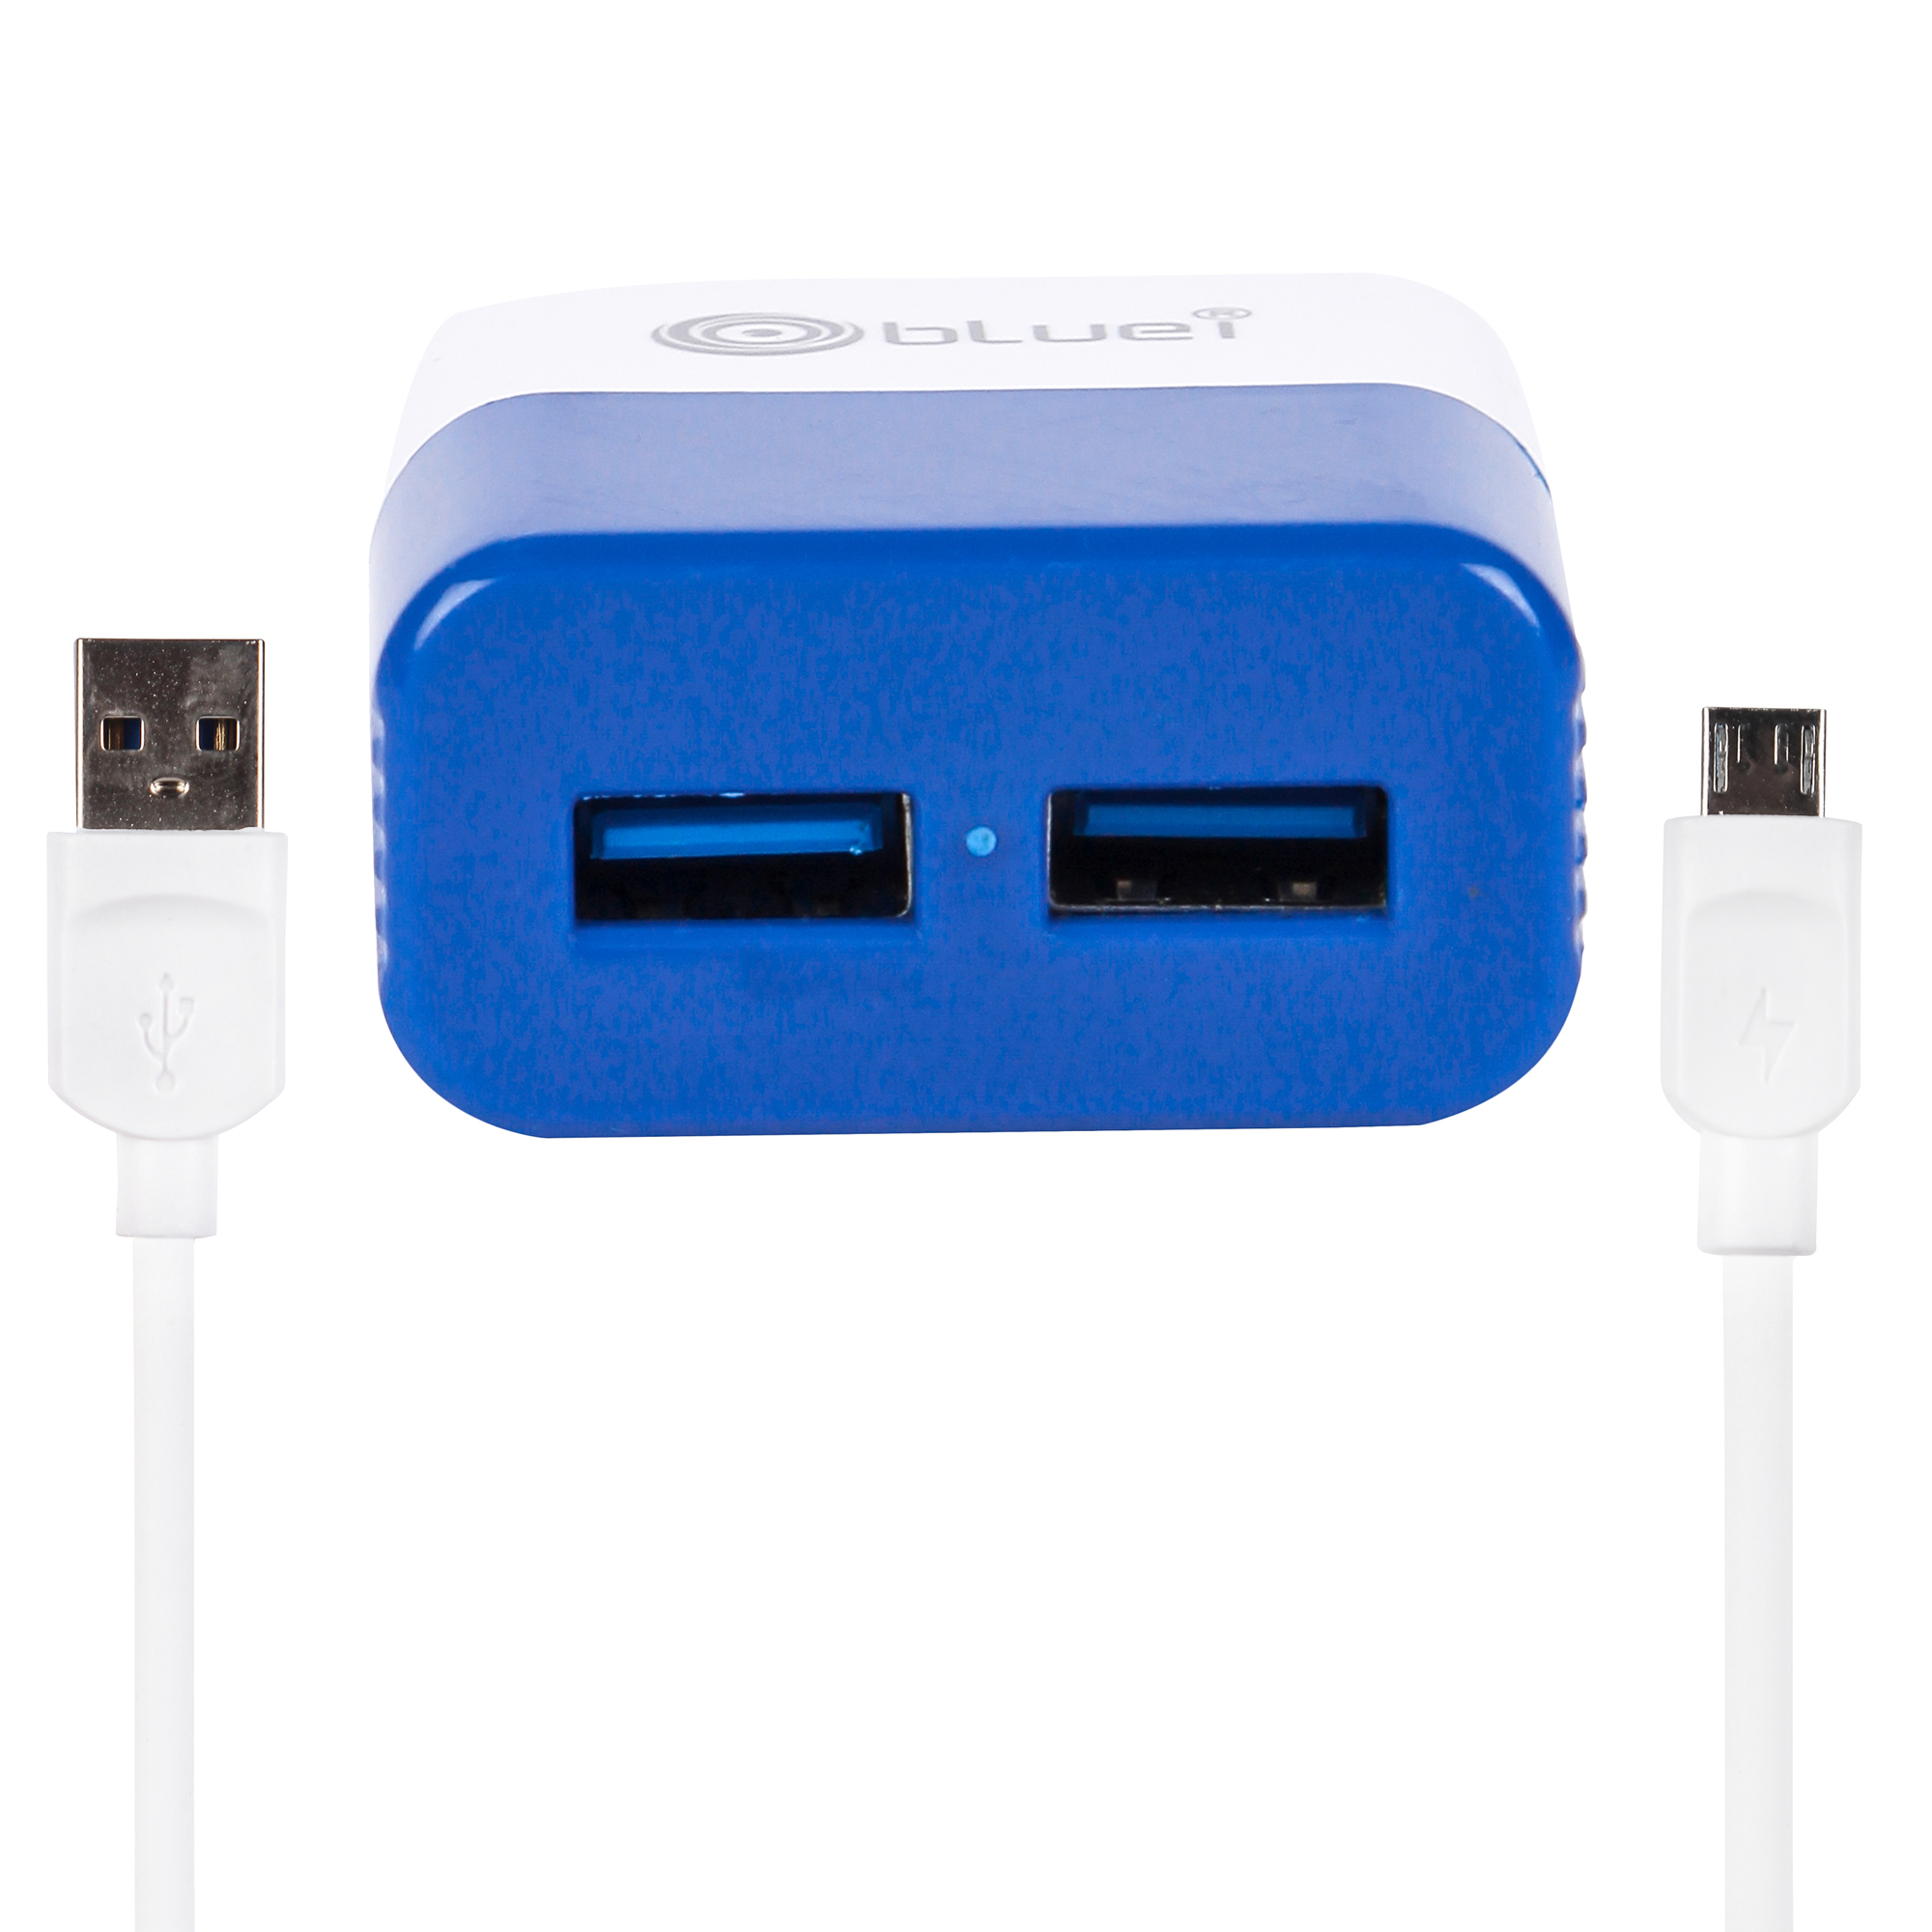 Bluei Tc-01 3.0 A, Dual Usb Mobile Charger